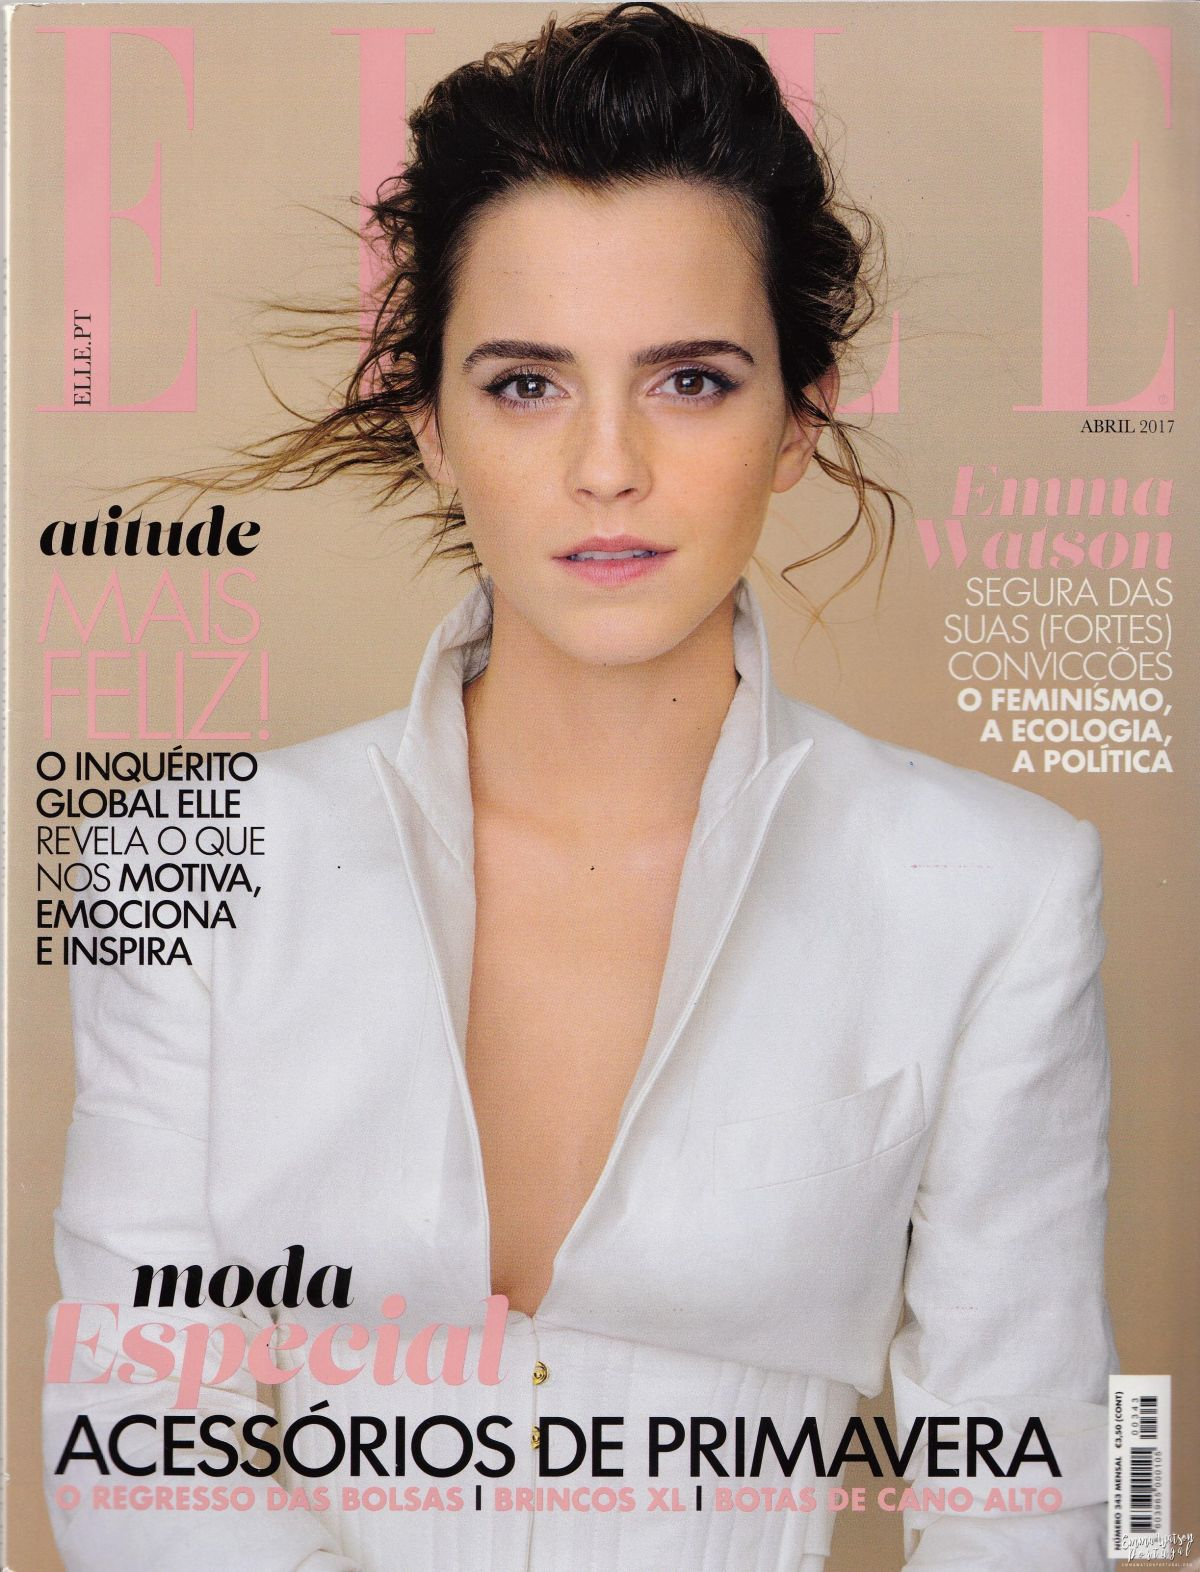 EMMA WATSON in Elle Magazine, Portugal April 2017